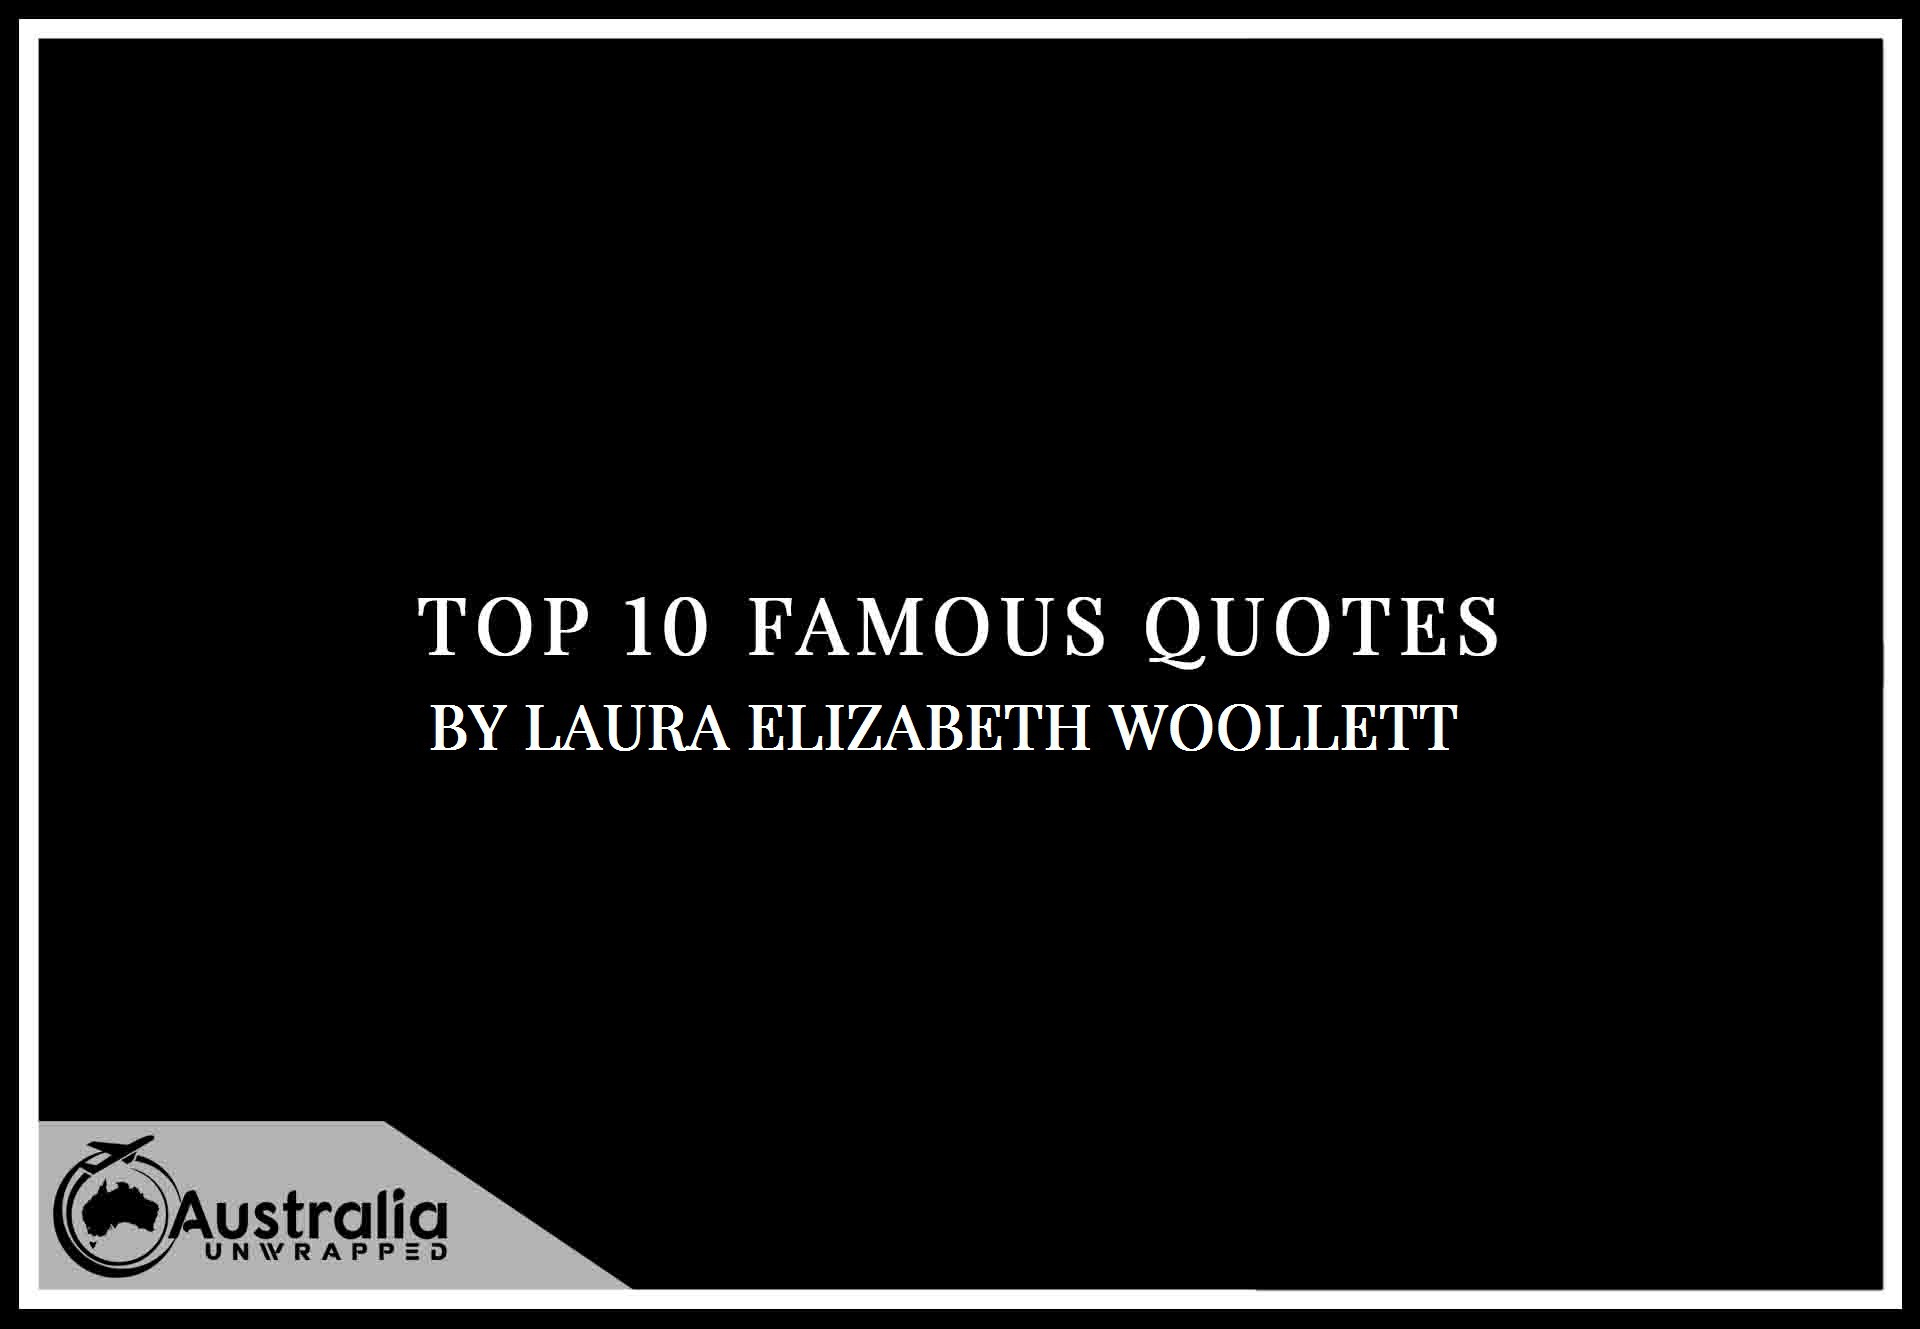 Laura Elizabeth Woollett's Top 10 Popular and Famous Quotes